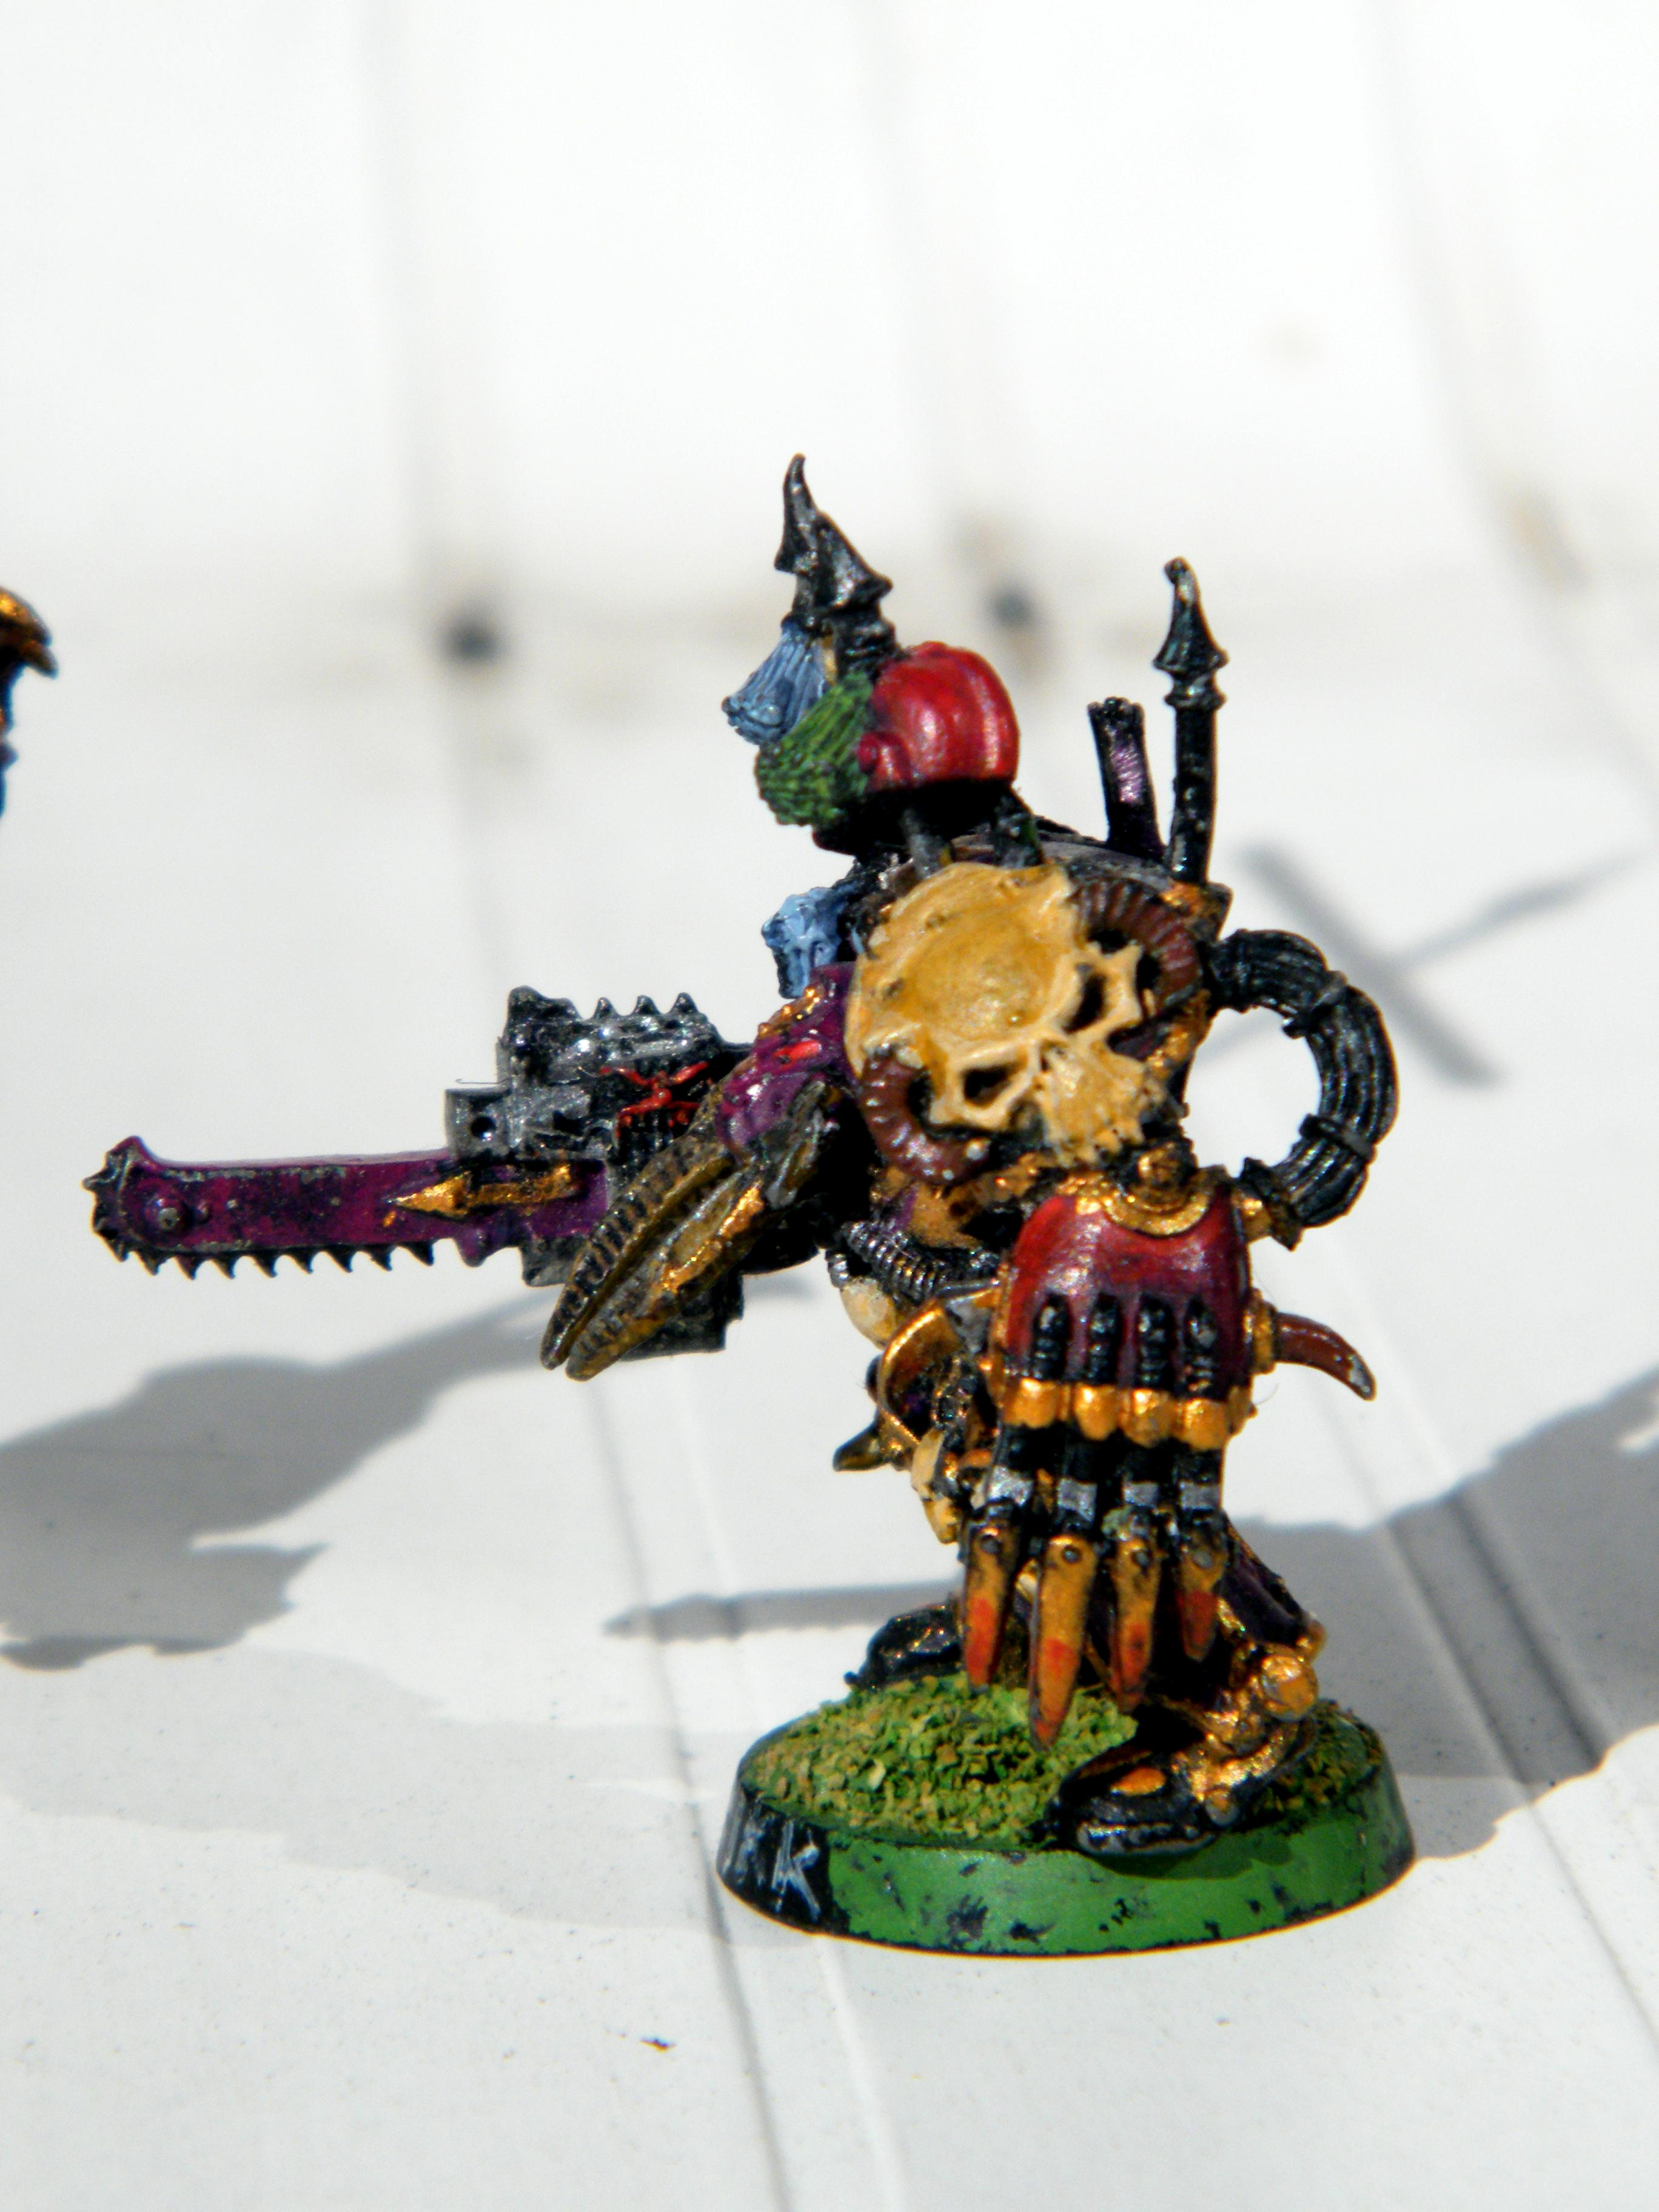 Champion, Chaos, Chaos Space Marines, Emperor's Children, Slaanesh, Warhammer 40,000